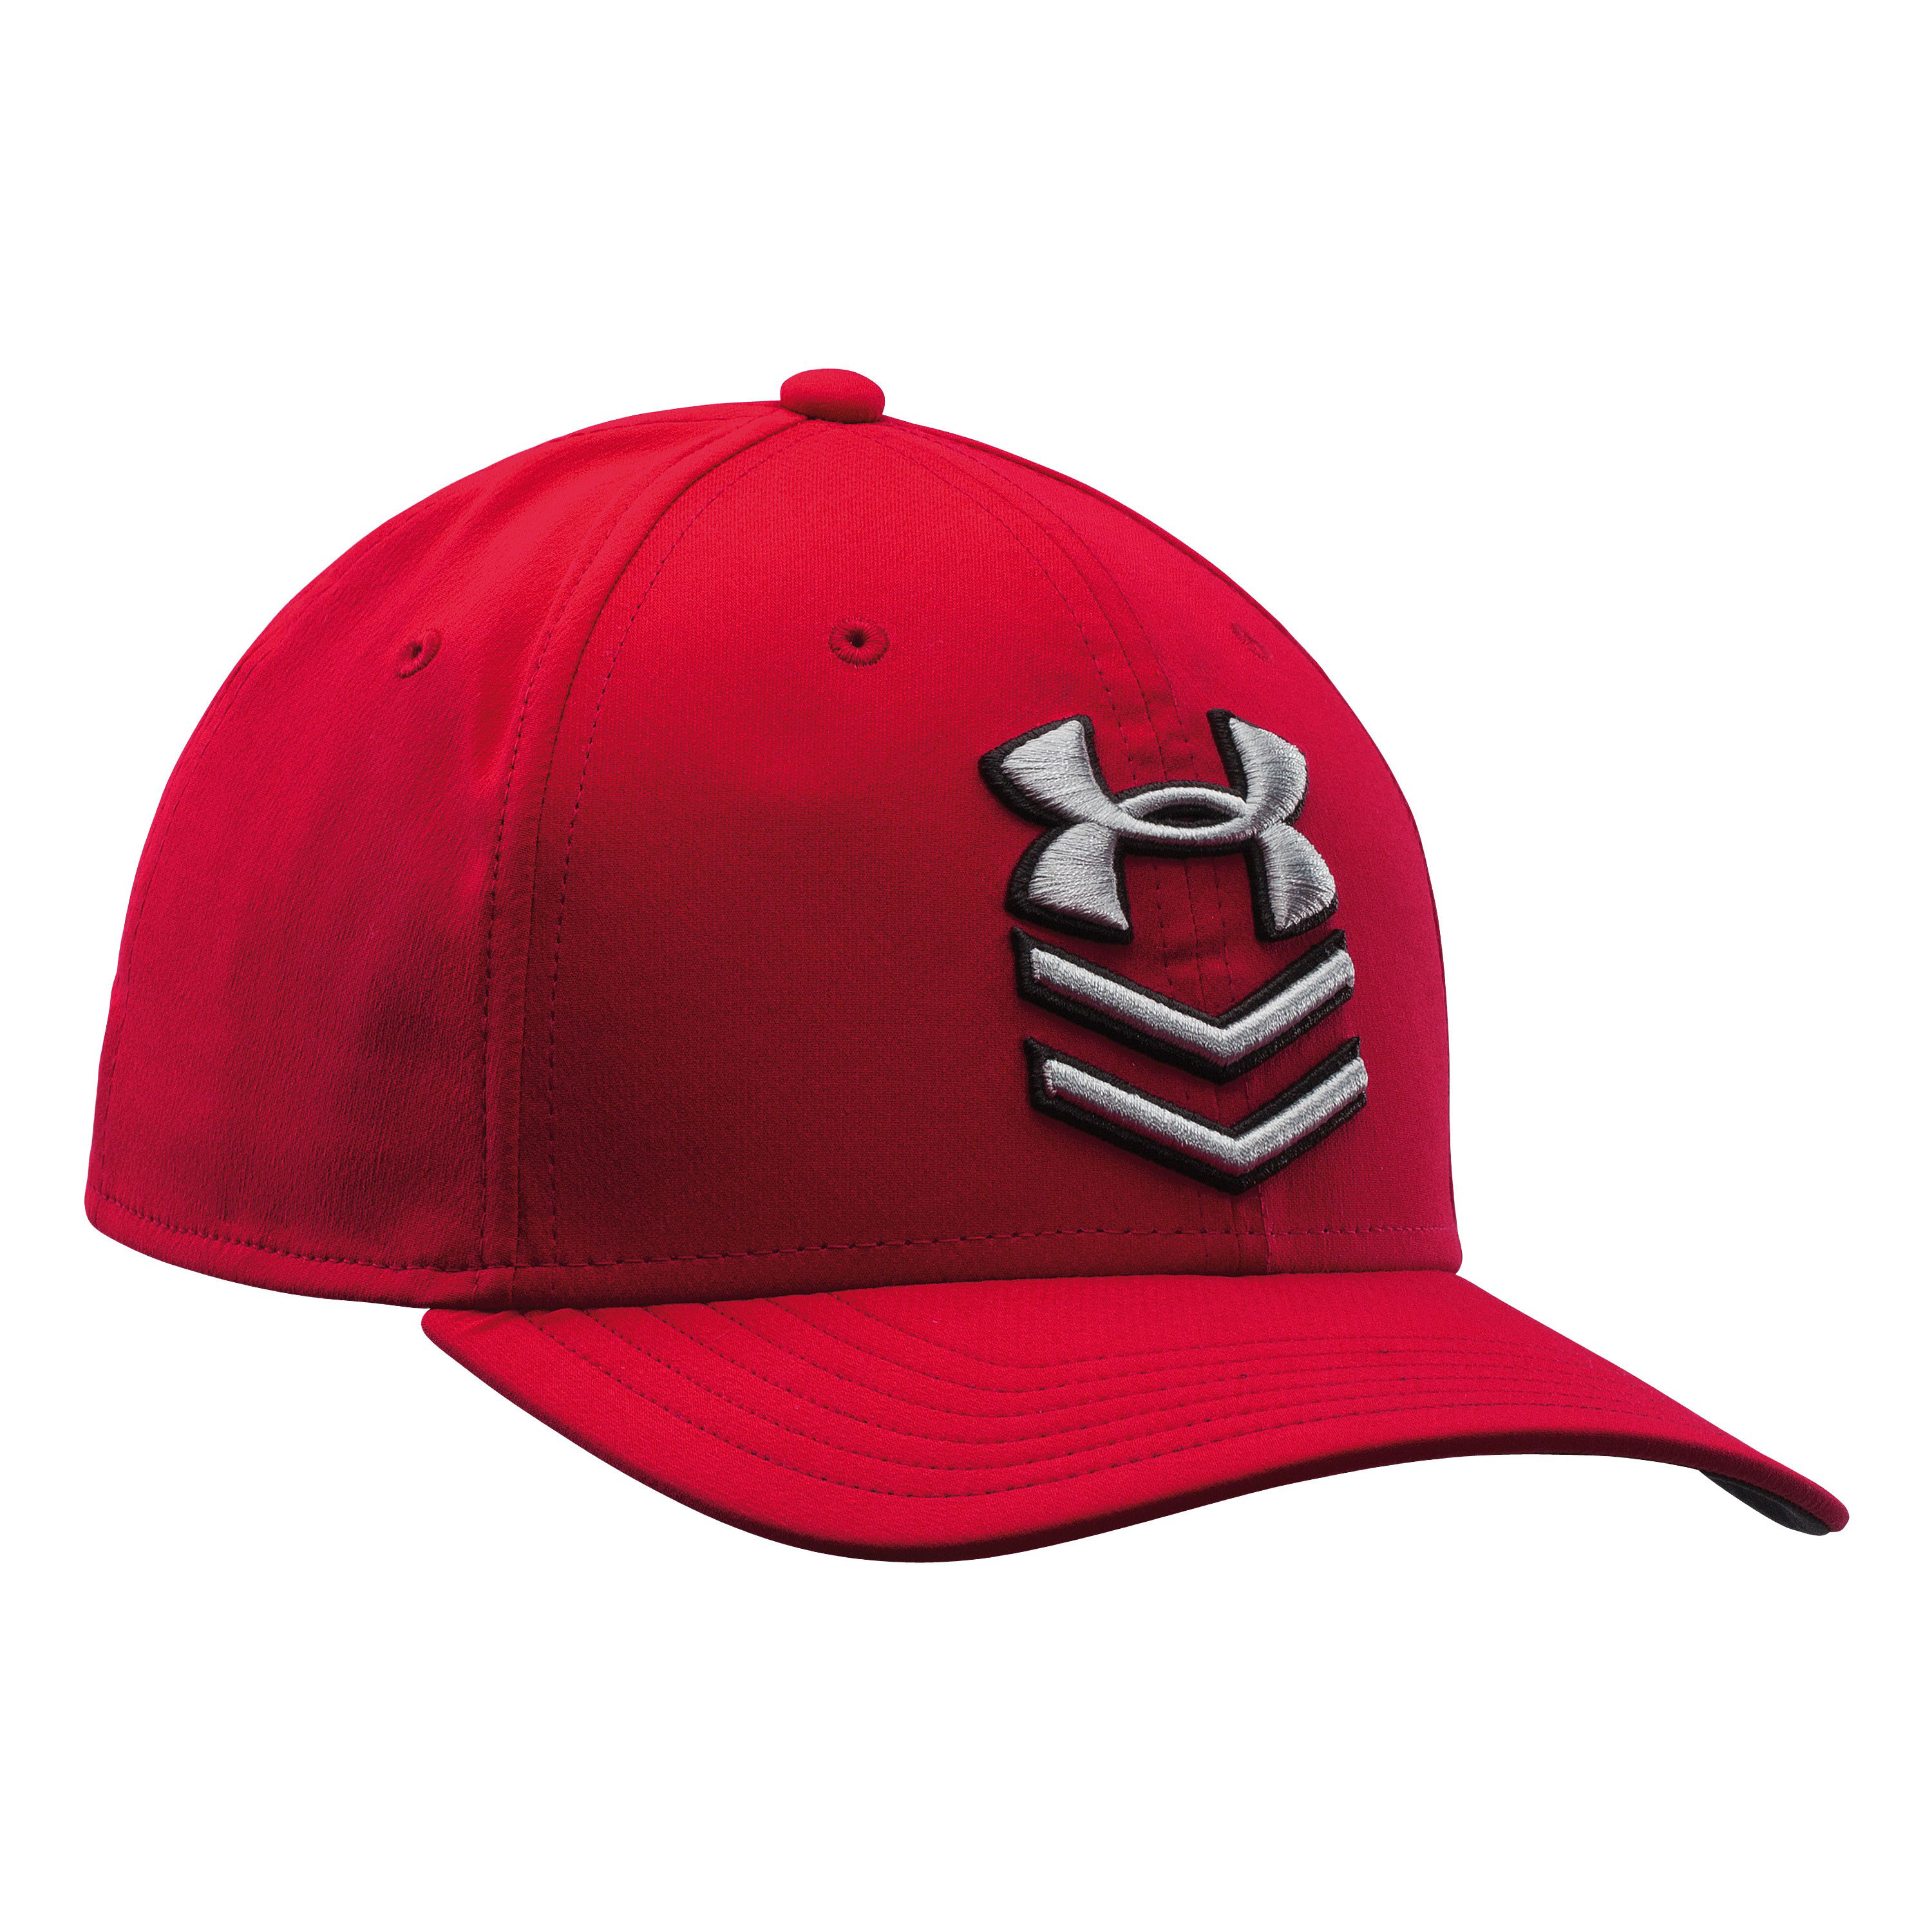 Under Armour Undeniable Cap red